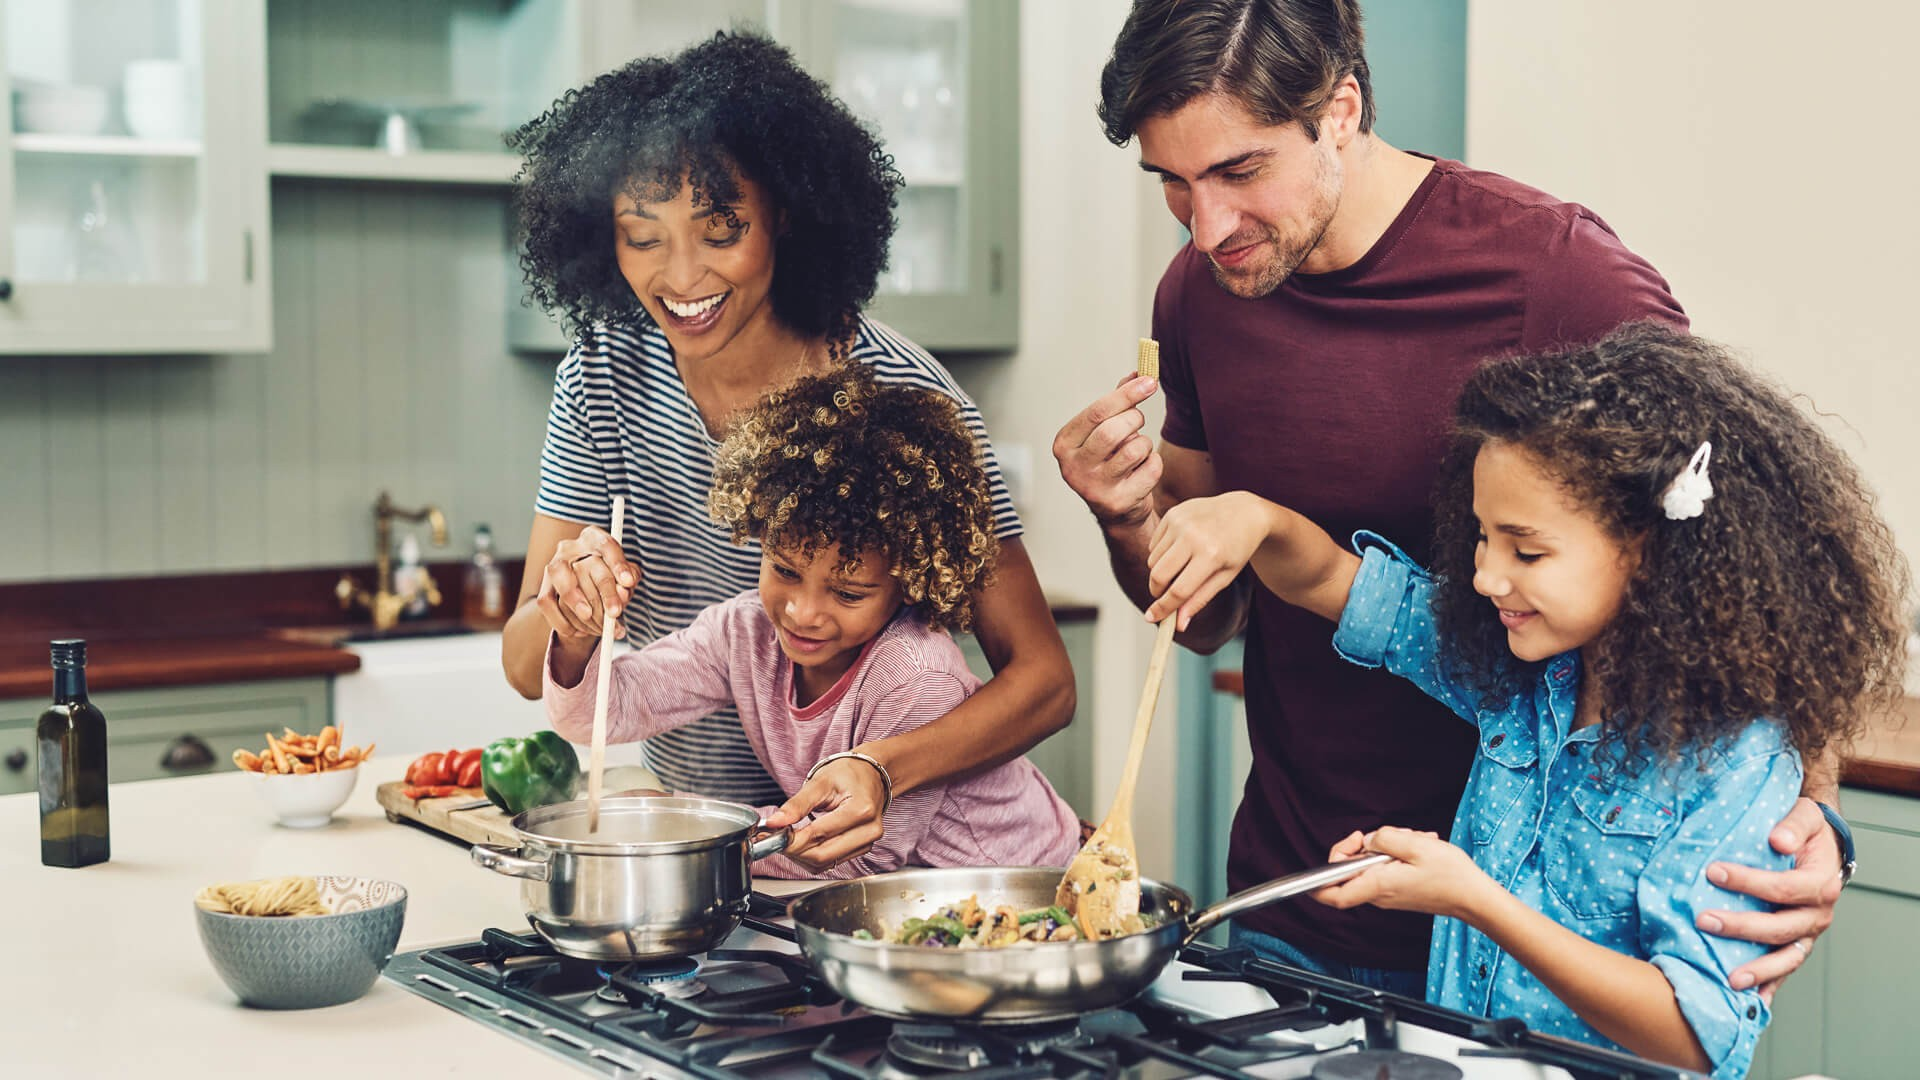 Shot of a family of four cooking together in their kitchen at home.